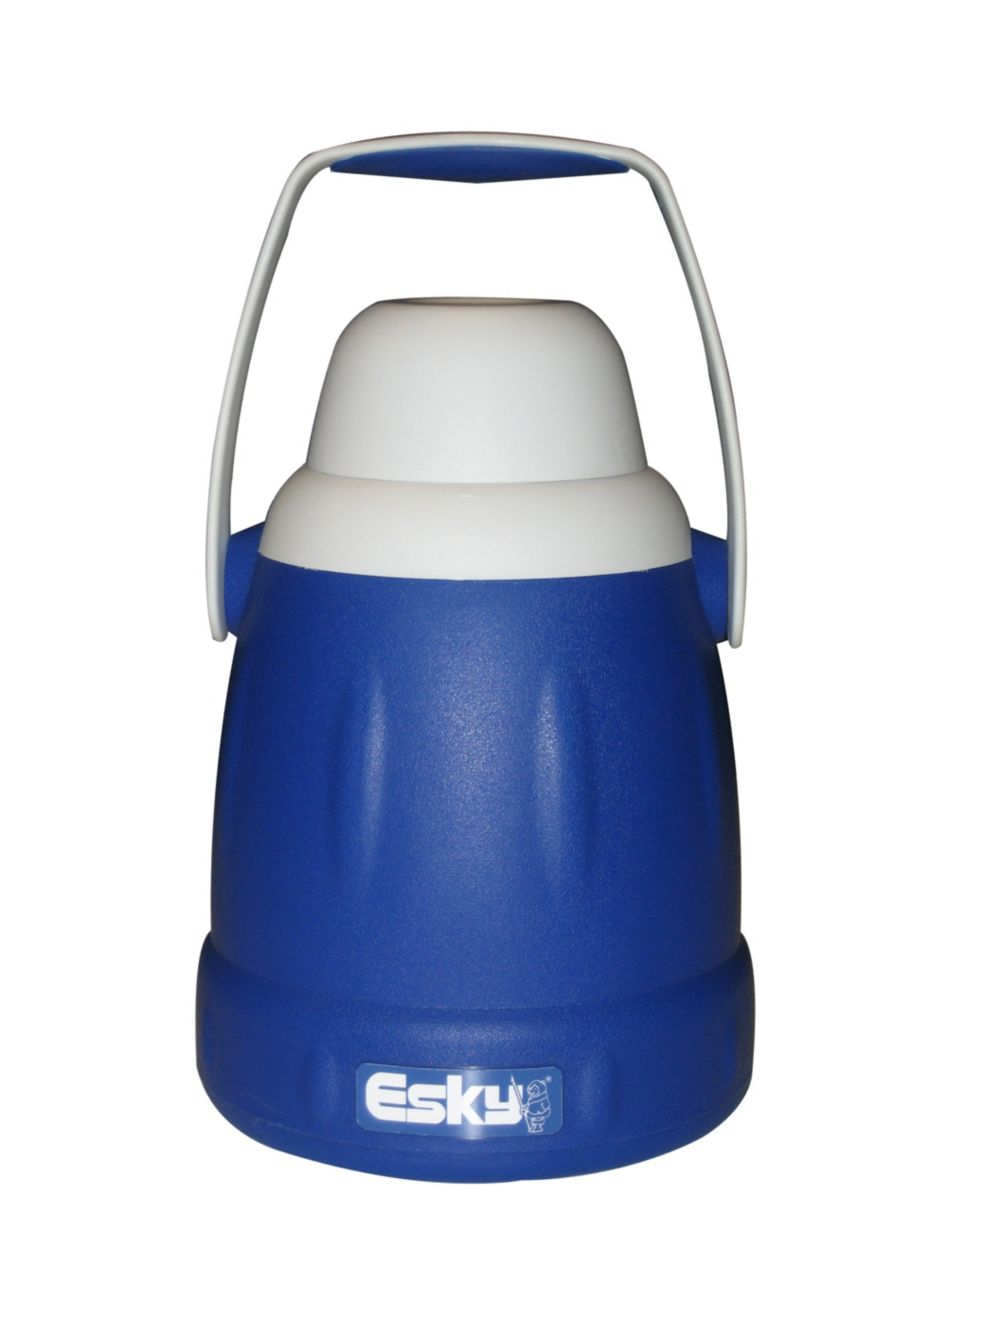 Esky® 2.5L Jug With Cup